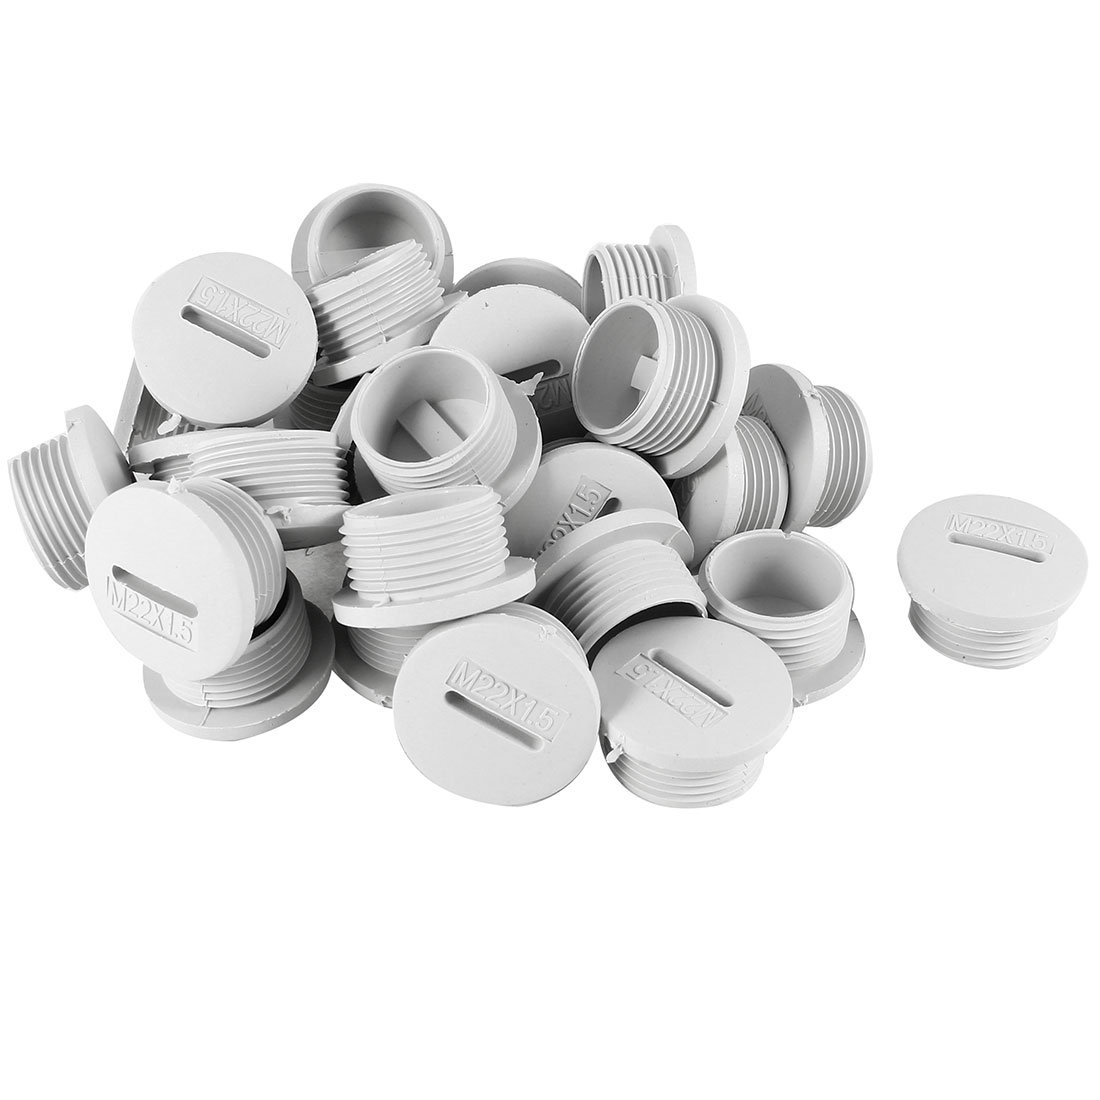 30 Pcs M22 22mm Diameter Round Gray Plastic Furniture Chair Table Legs Blanking End Cap Tubing Tube Insert